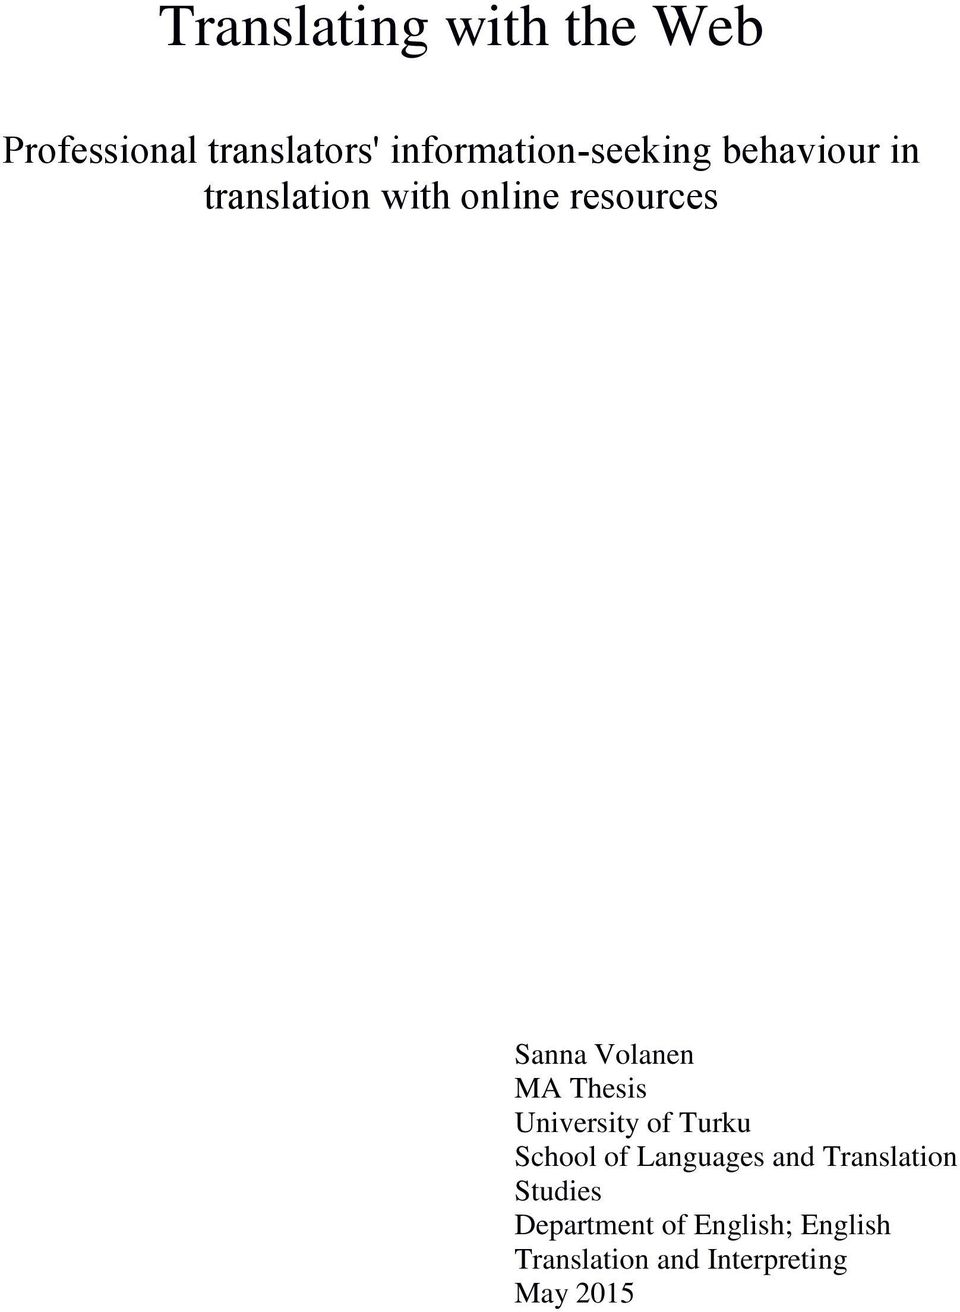 Sanna Volanen MA Thesis University of Turku School of Languages and